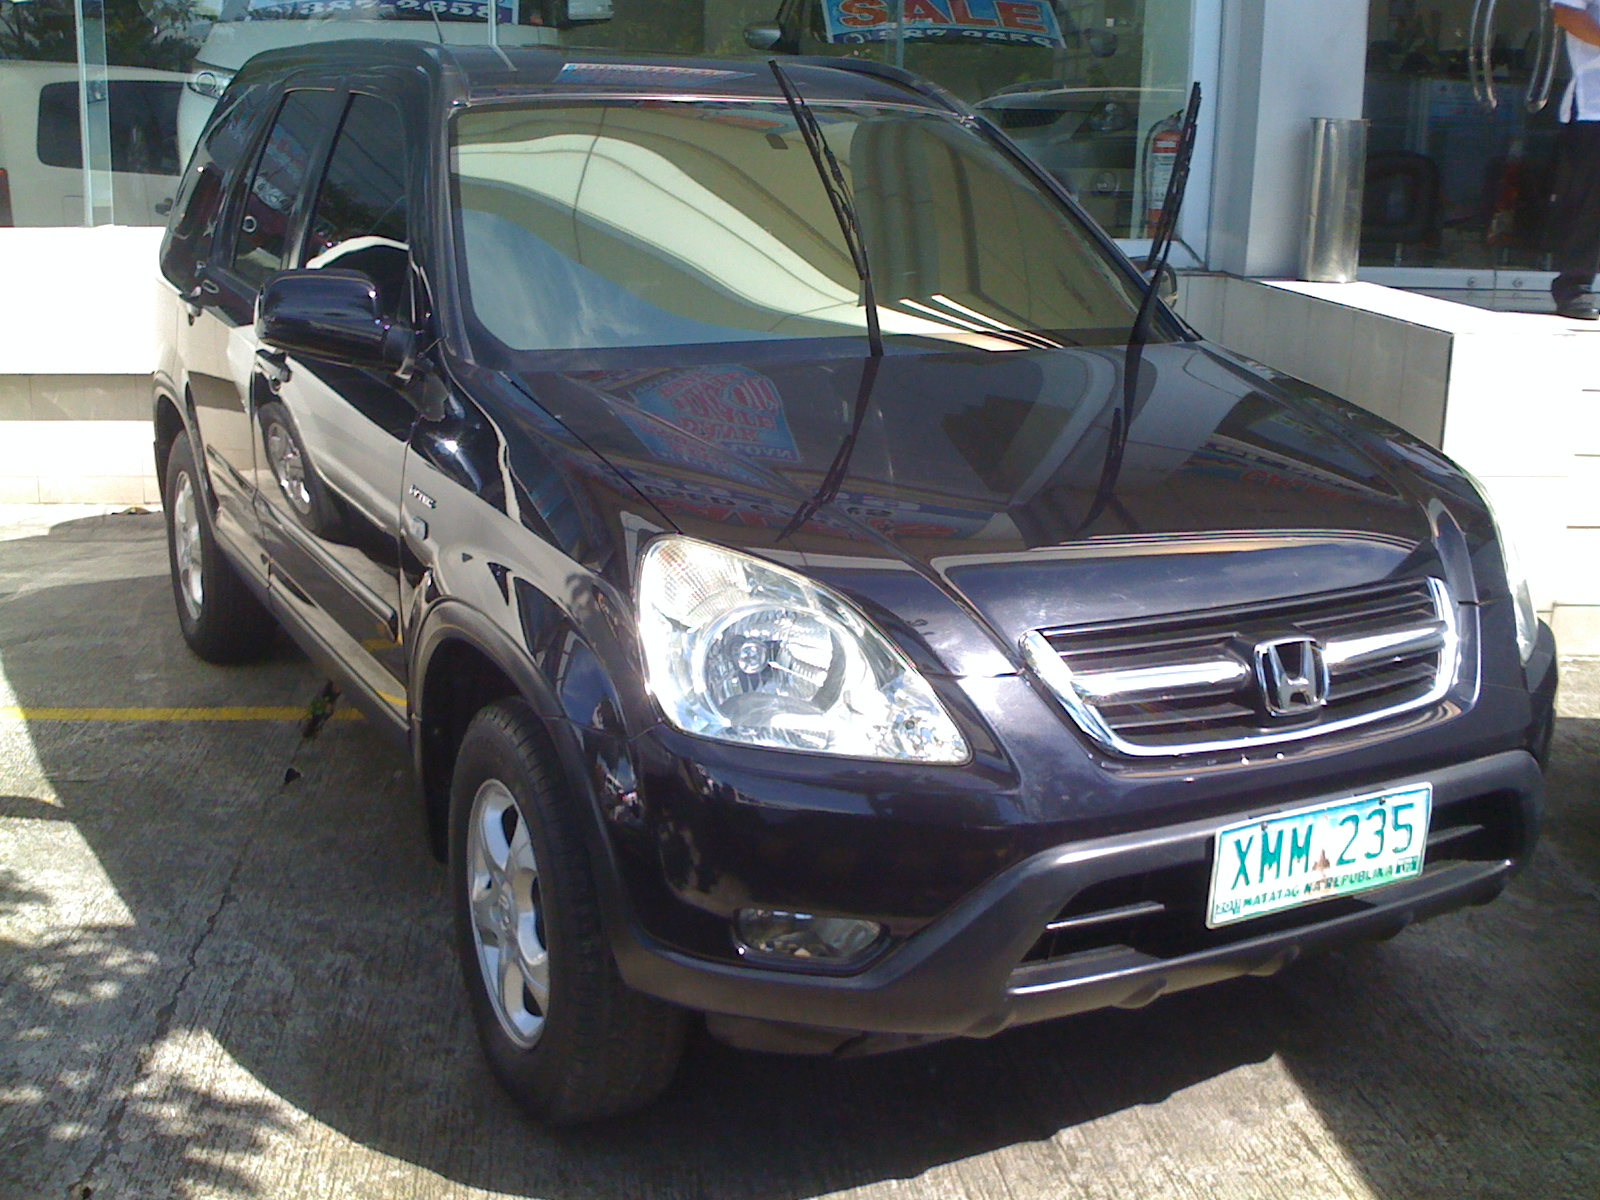 we and sell quality cars we accept trade ins we offer pre approved car loan visit or contact carsonsaleph gmail